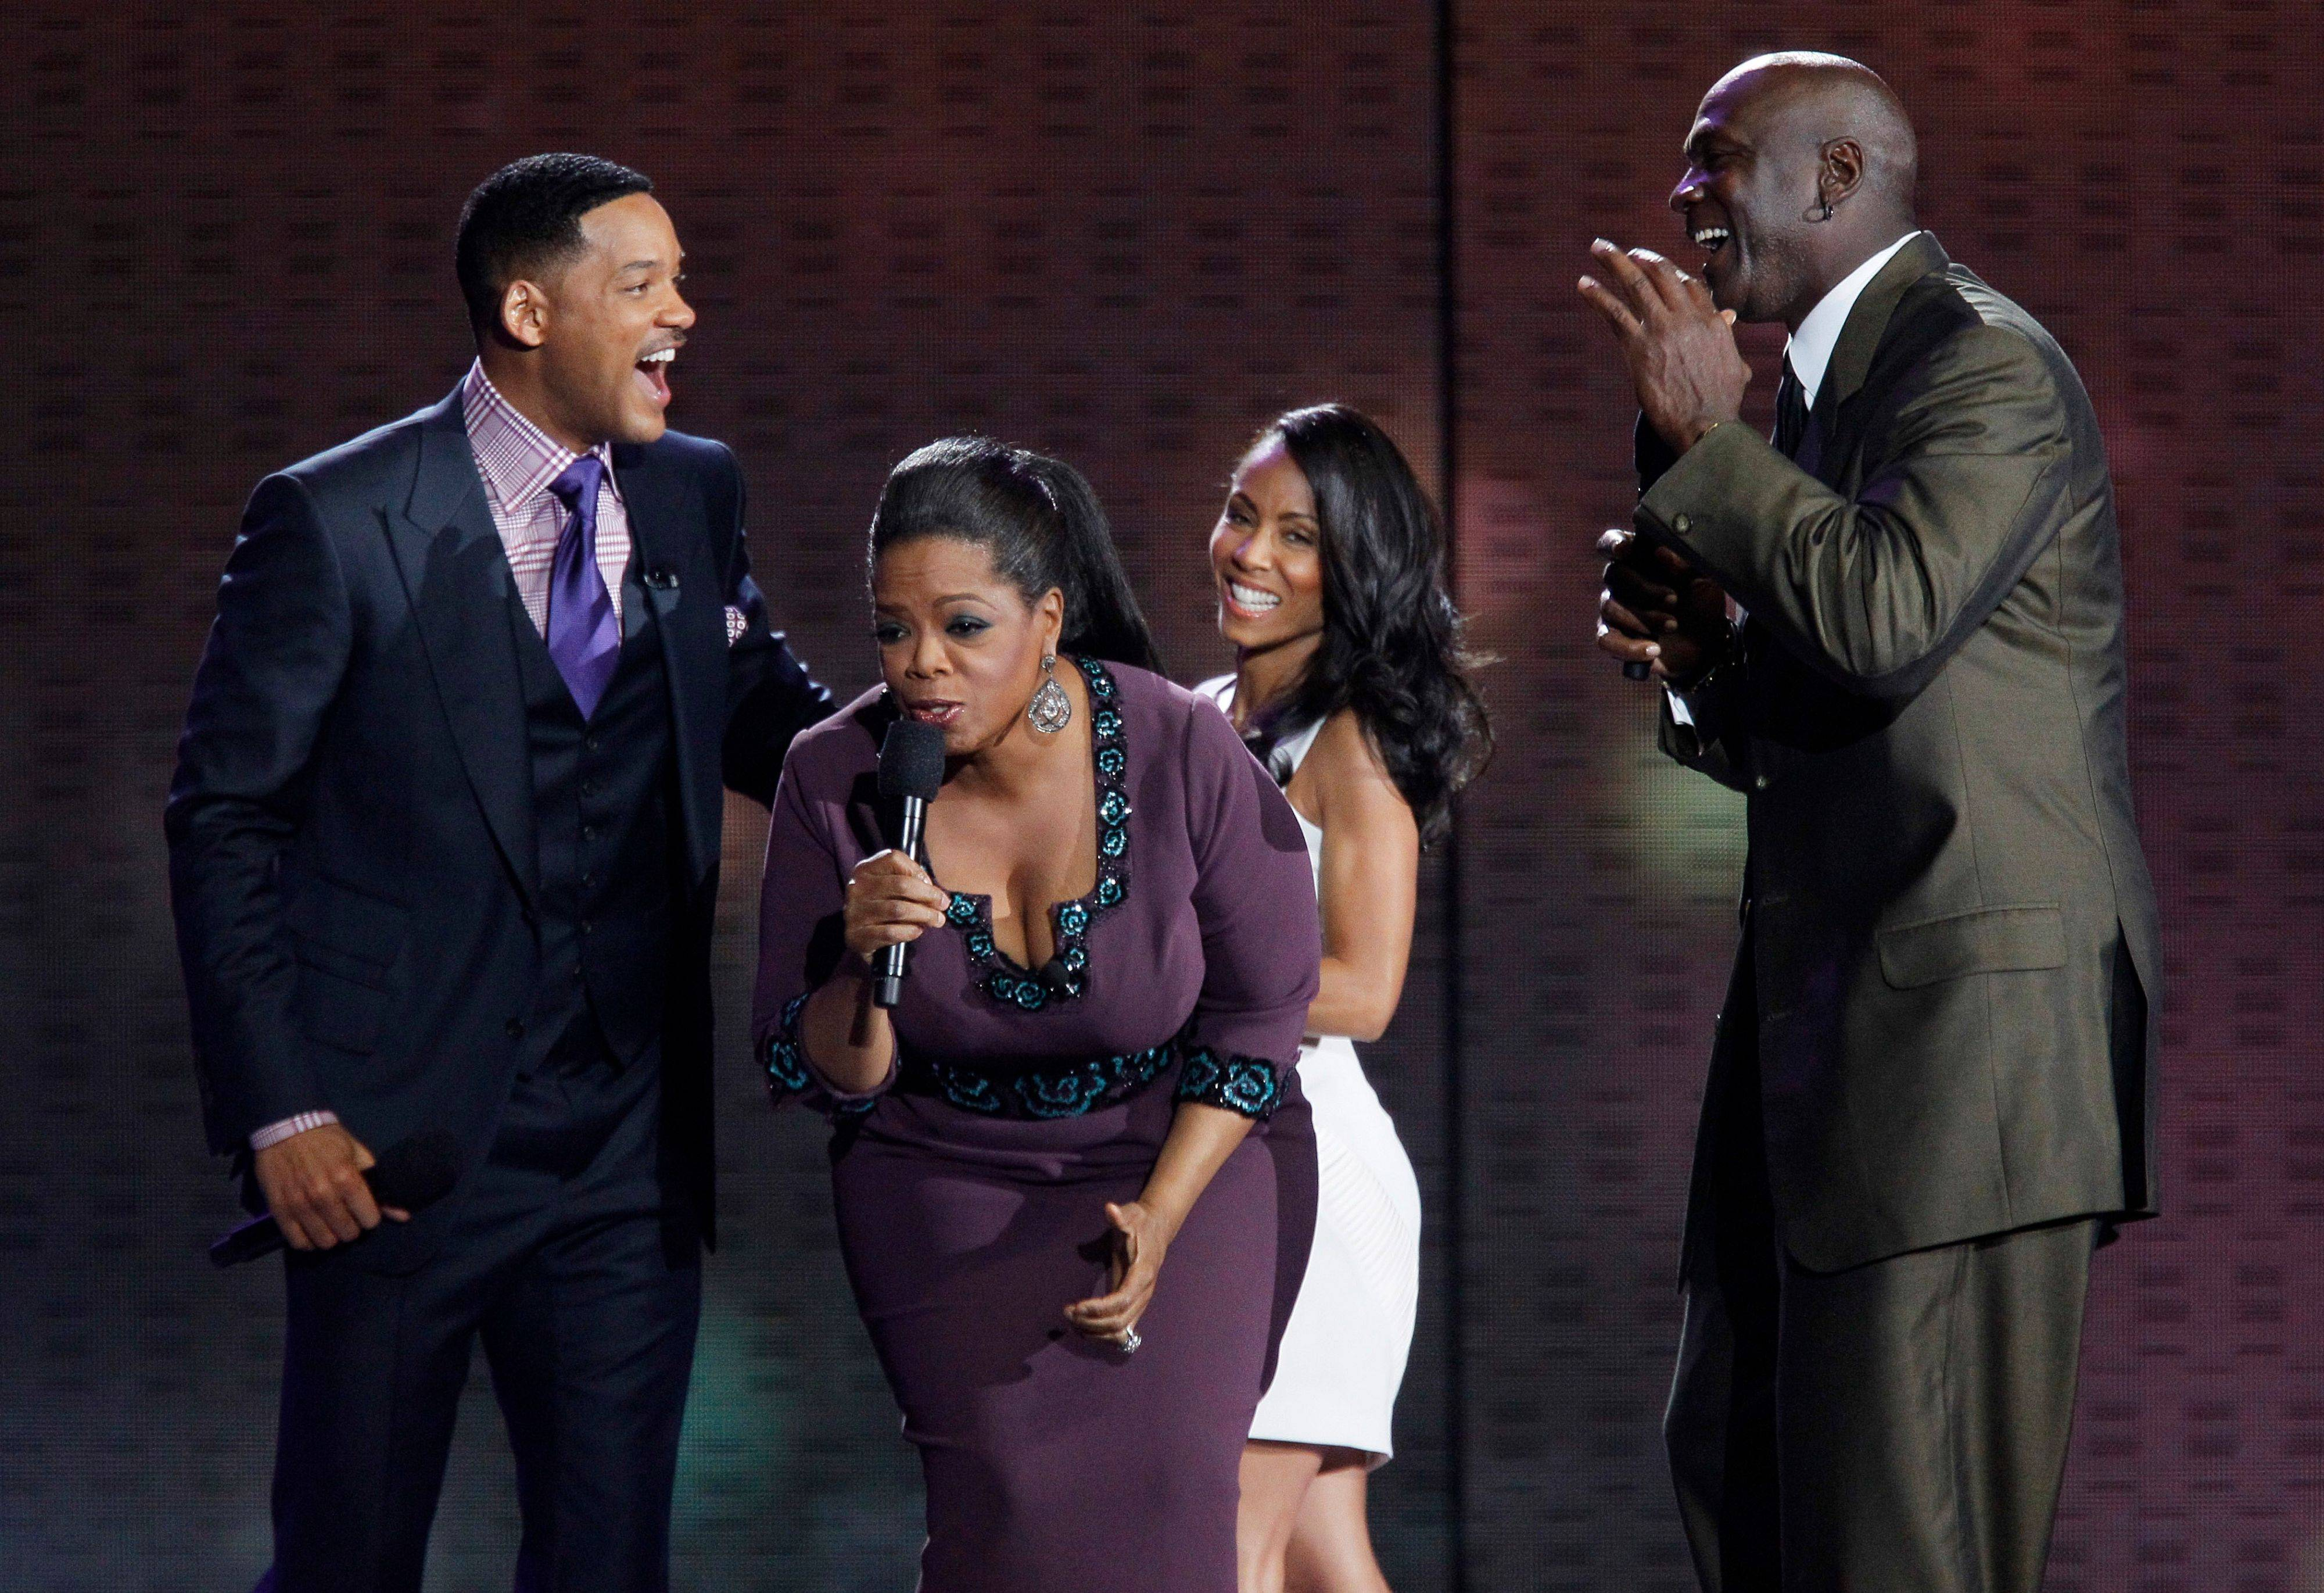 Oprah Winfrey reacts as she is surrounded by Will Smith, his wife Jada Pinkett Smith and Michael Jordan, right, on stage during the final taping Tuesday.